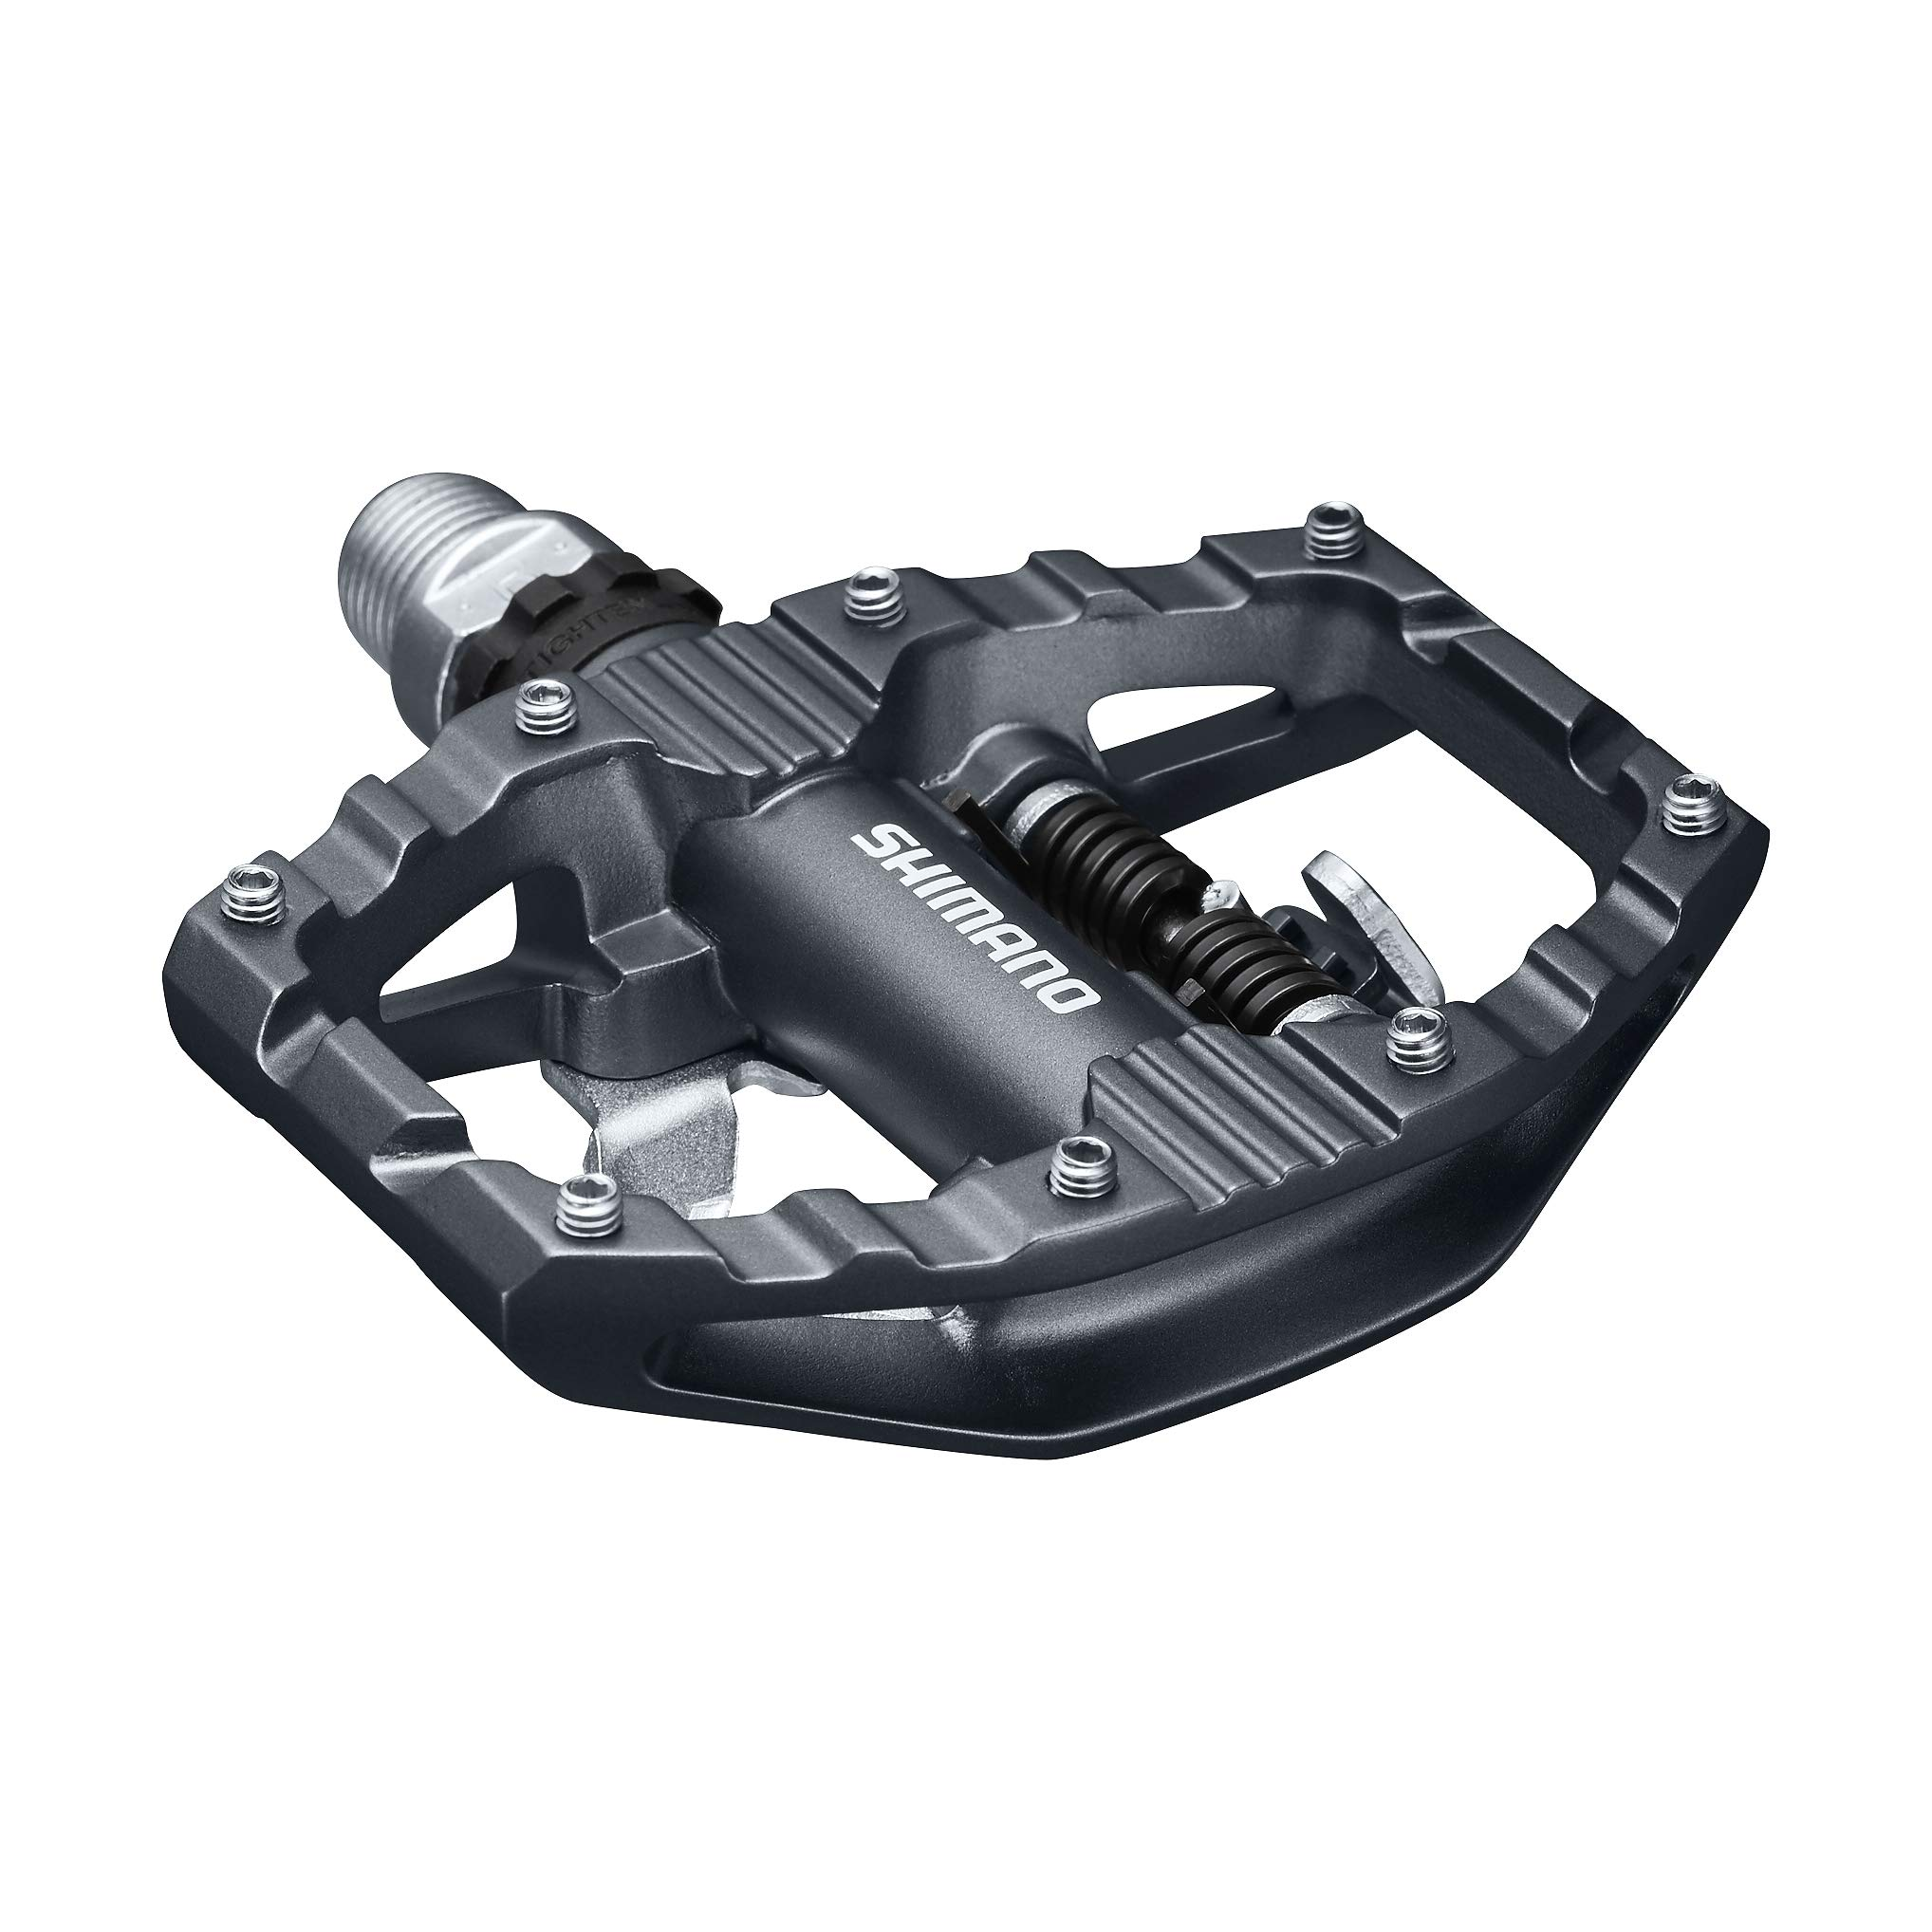 PD-EH500; SPD Bike Pedals; Cleat Set Included; Dual Sided Platform